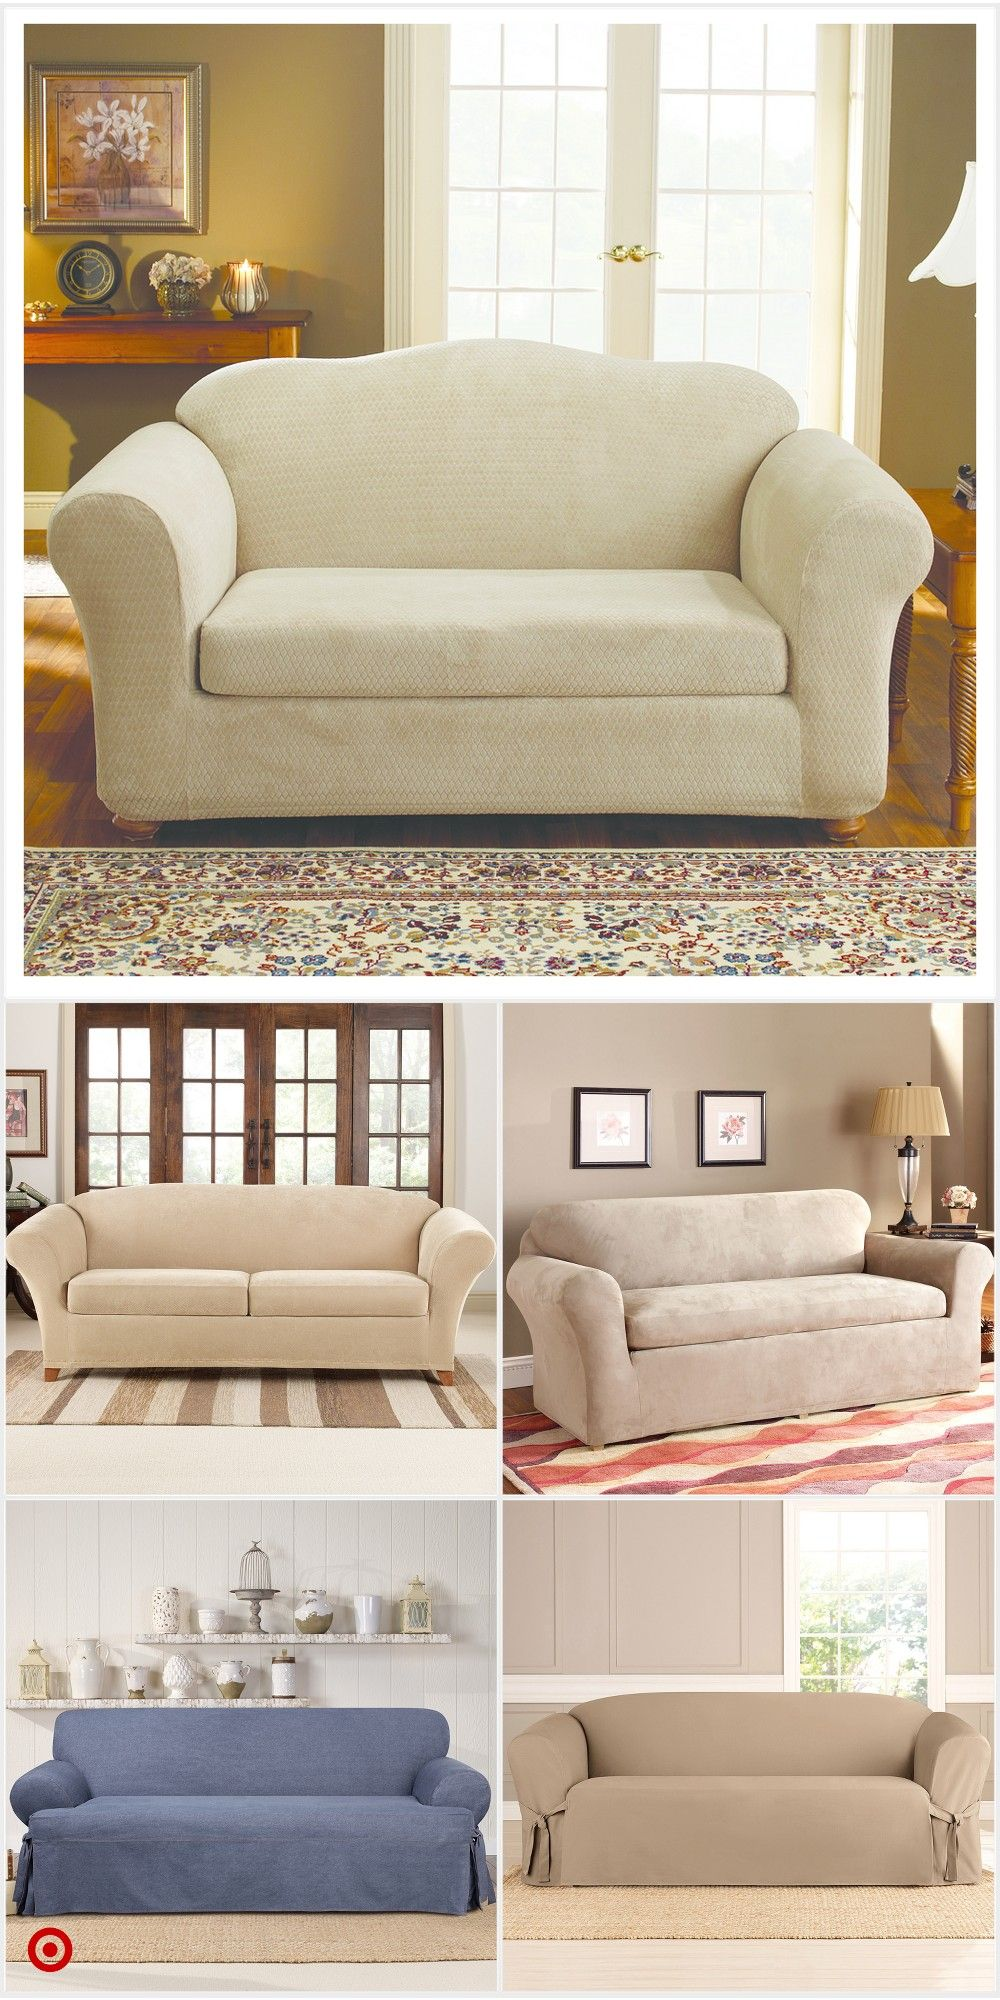 Shop Target For Sofa Slipcover You Will Love At Great Low Prices Free Shipping On Order Slipcovered Sofa Pallet Furniture Living Room Dining Room Chair Covers